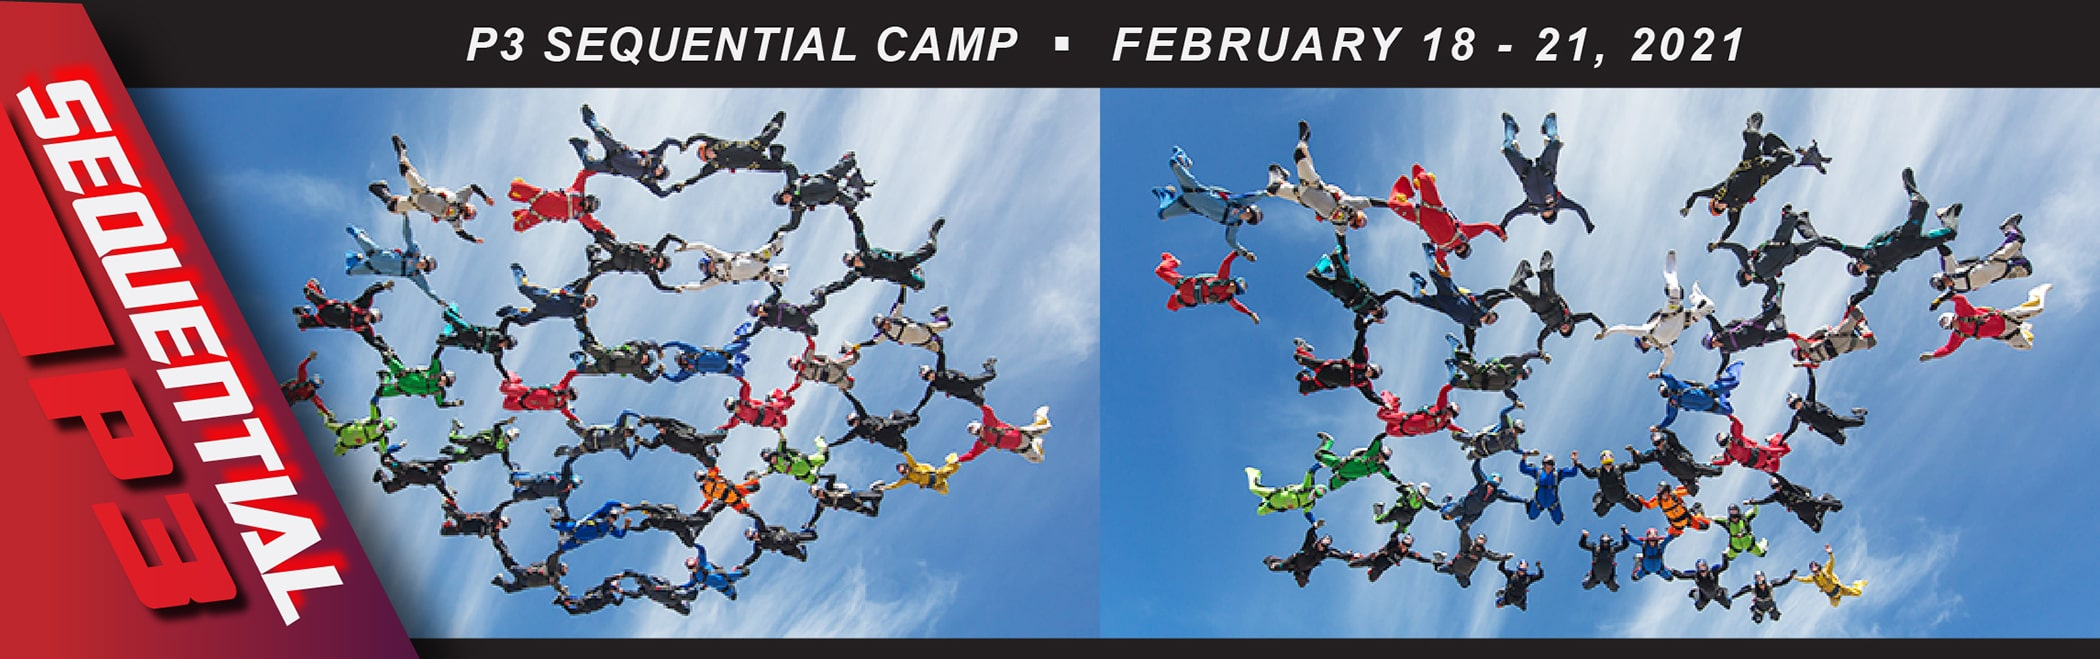 P3 Sequential Camp (February 2020)